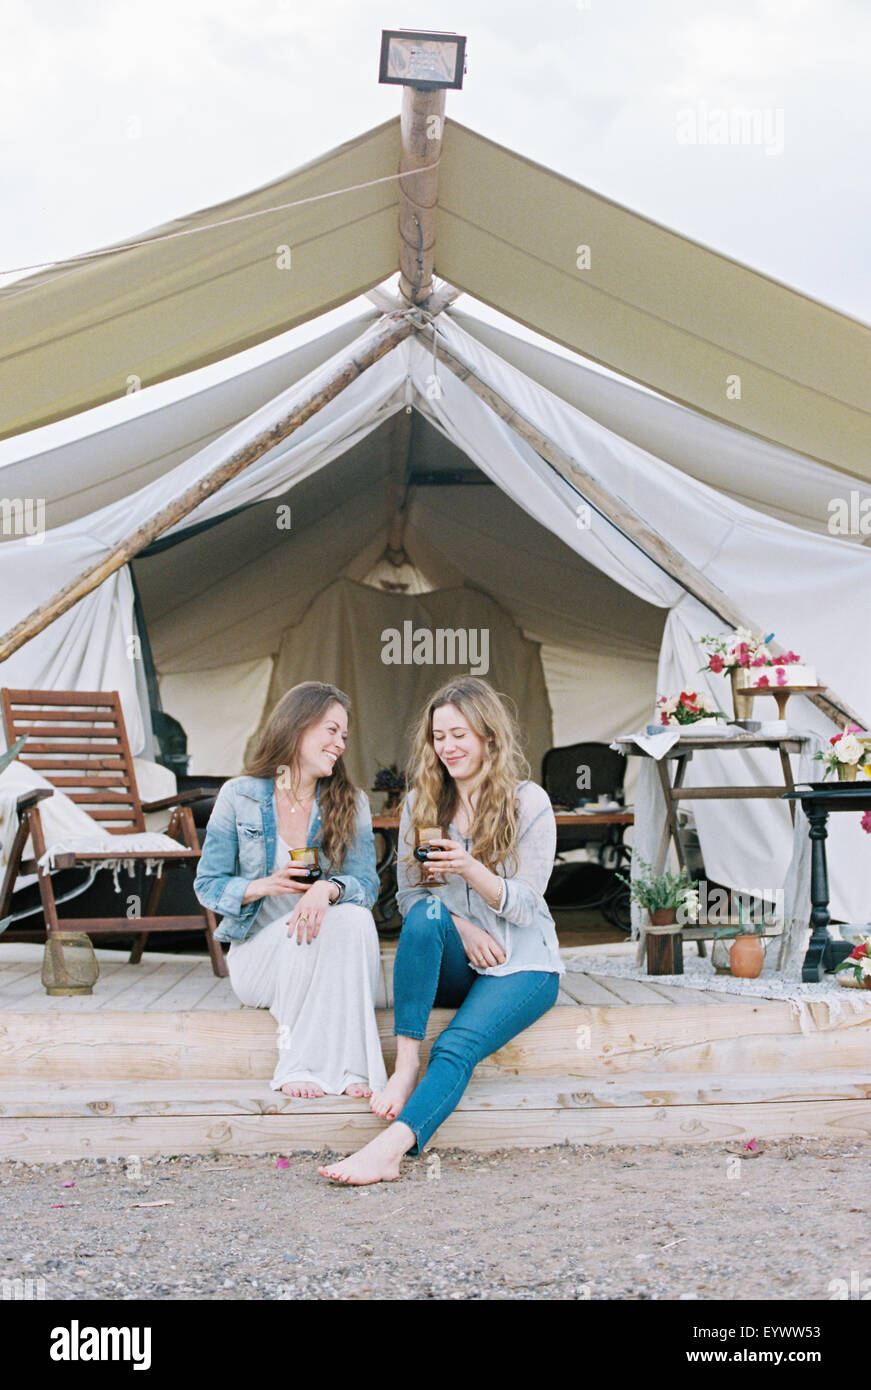 Two smiling women sitting outside a large tent laughing and having a glass of wine. - Stock Image